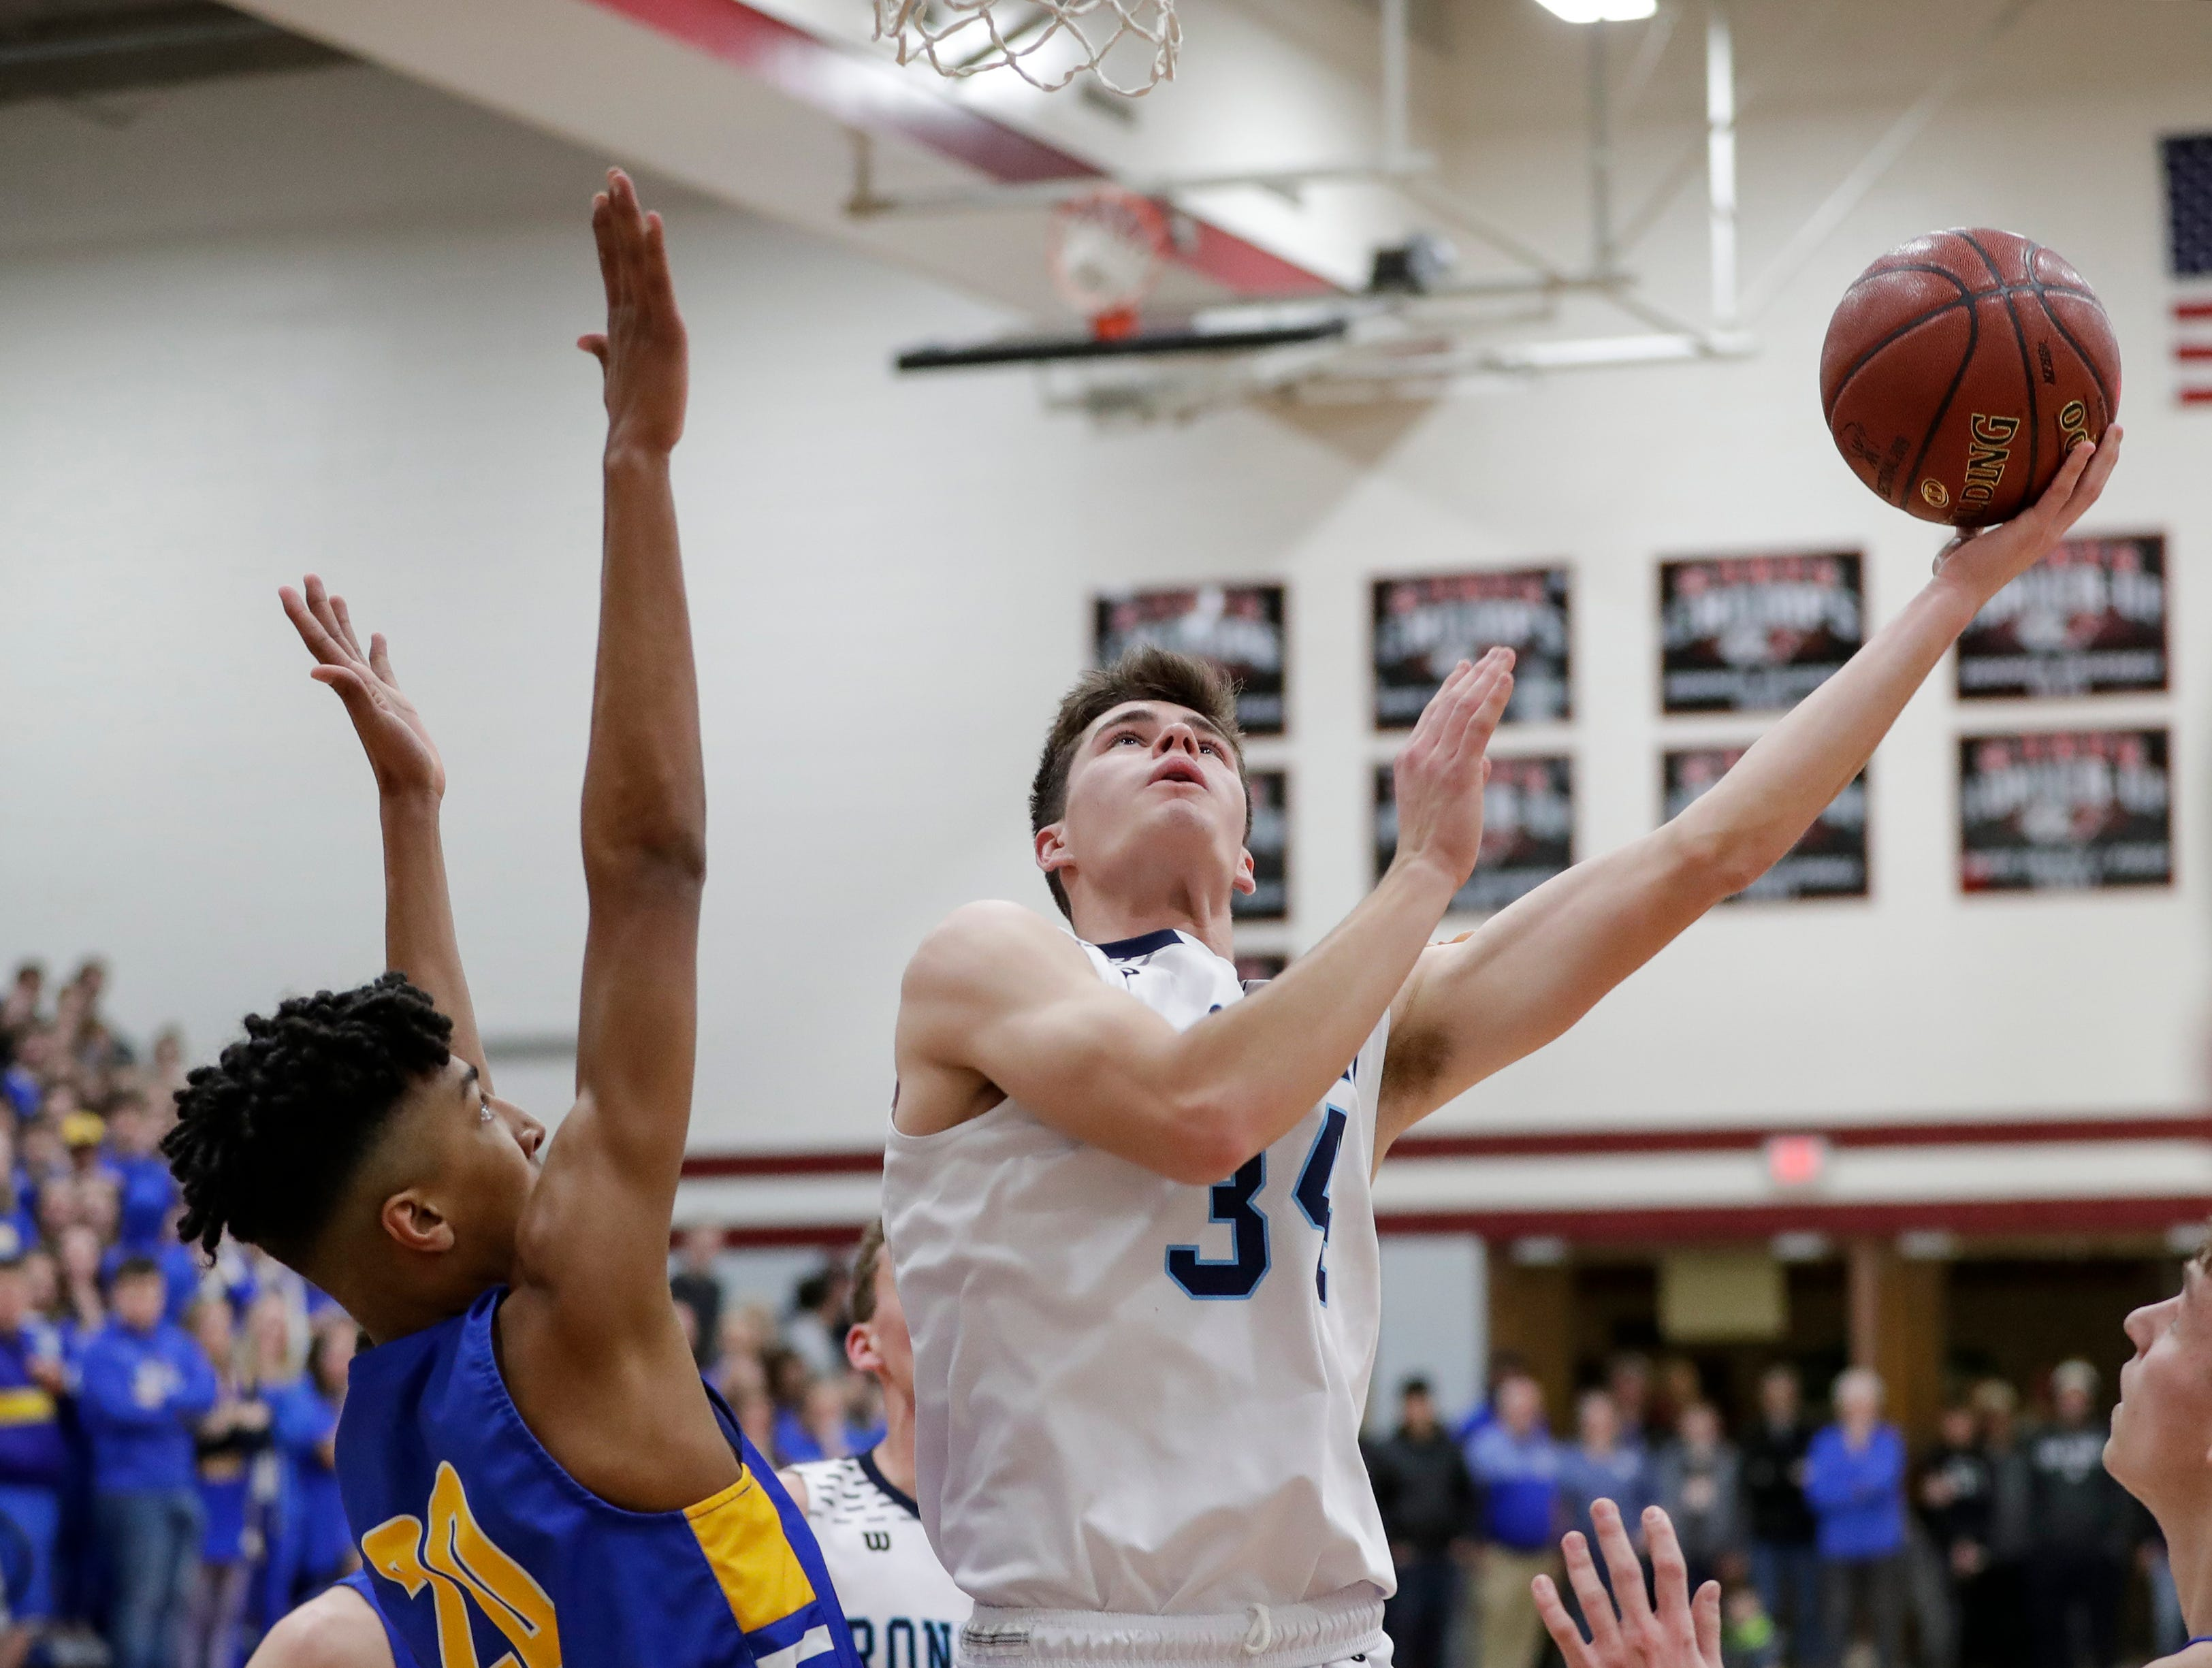 Roncalli's Ian Behringer shoots a layup against Howards Grove in a WIAA Division 4 sectional semifinal at New Holstein High School Thursday, March 7, 2019, in New Holstein, Wis. Joshua Clark/USA TODAY NETWORK-Wisconsin